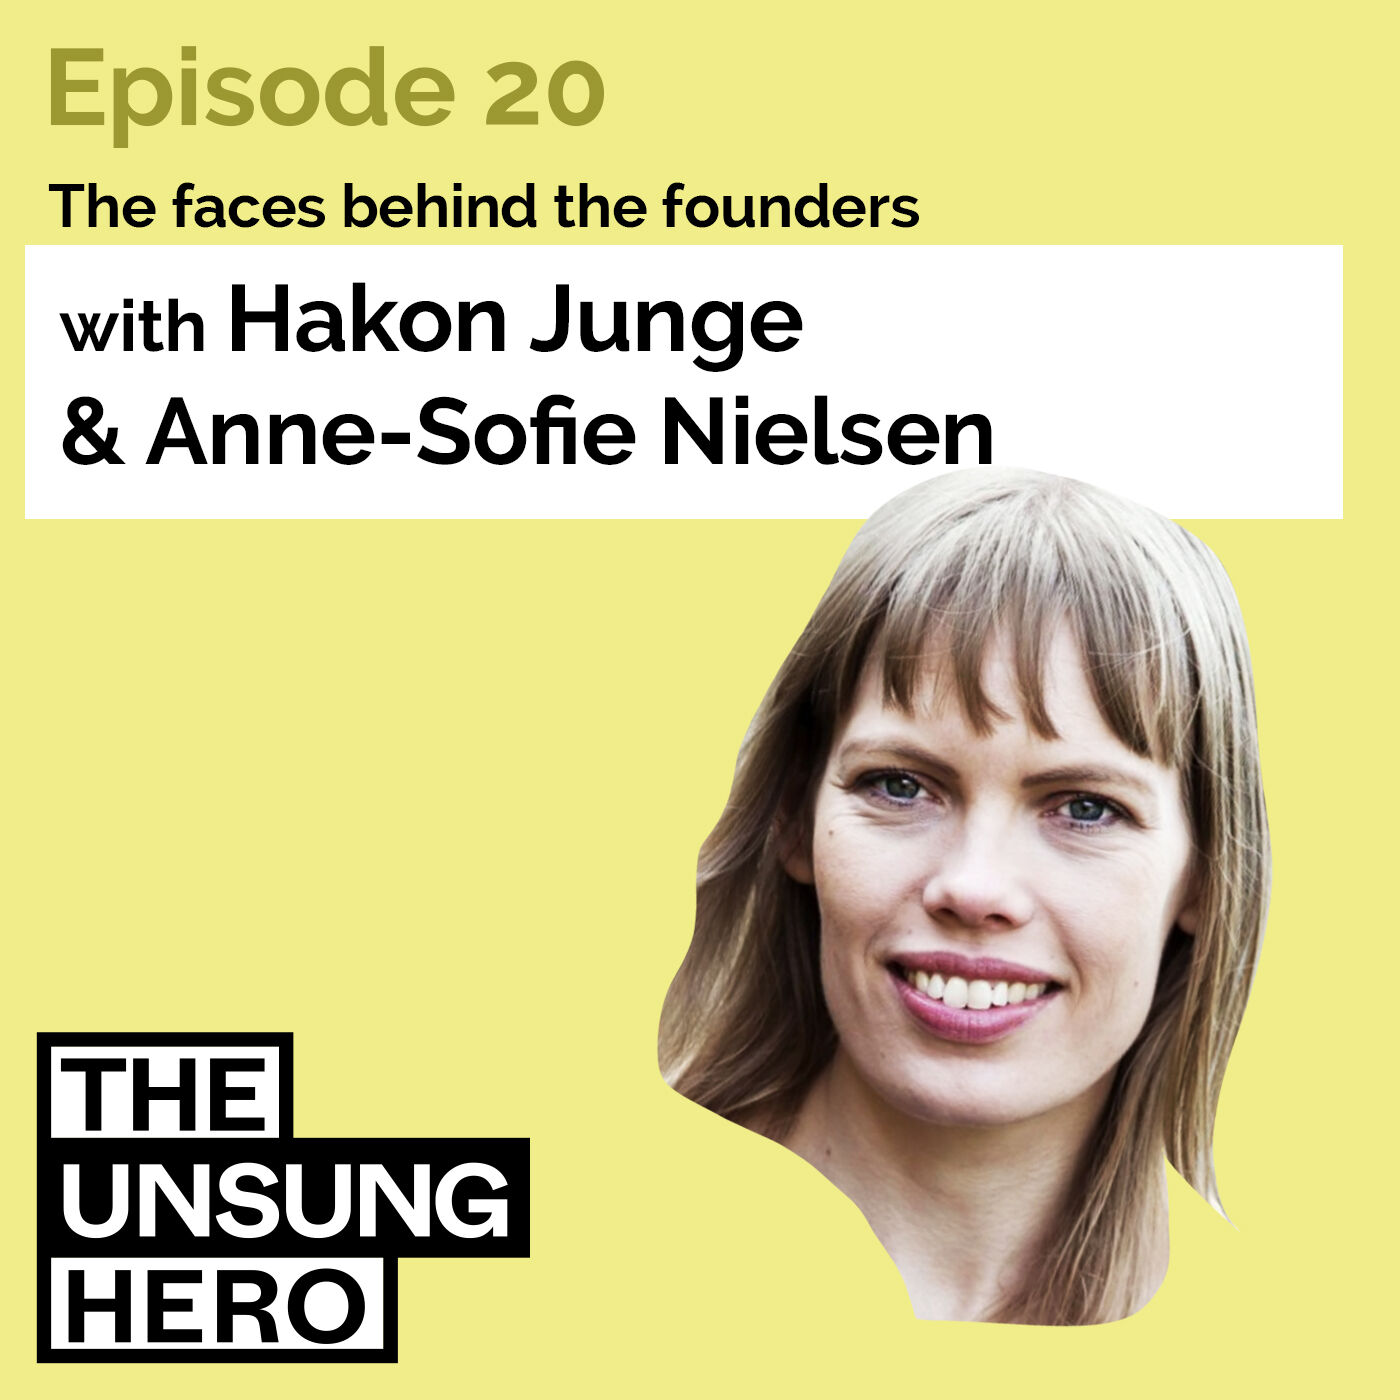 """Episode 20: """"A growth journey in tech"""" with Anne-Sofie Nielsen from Peakon"""